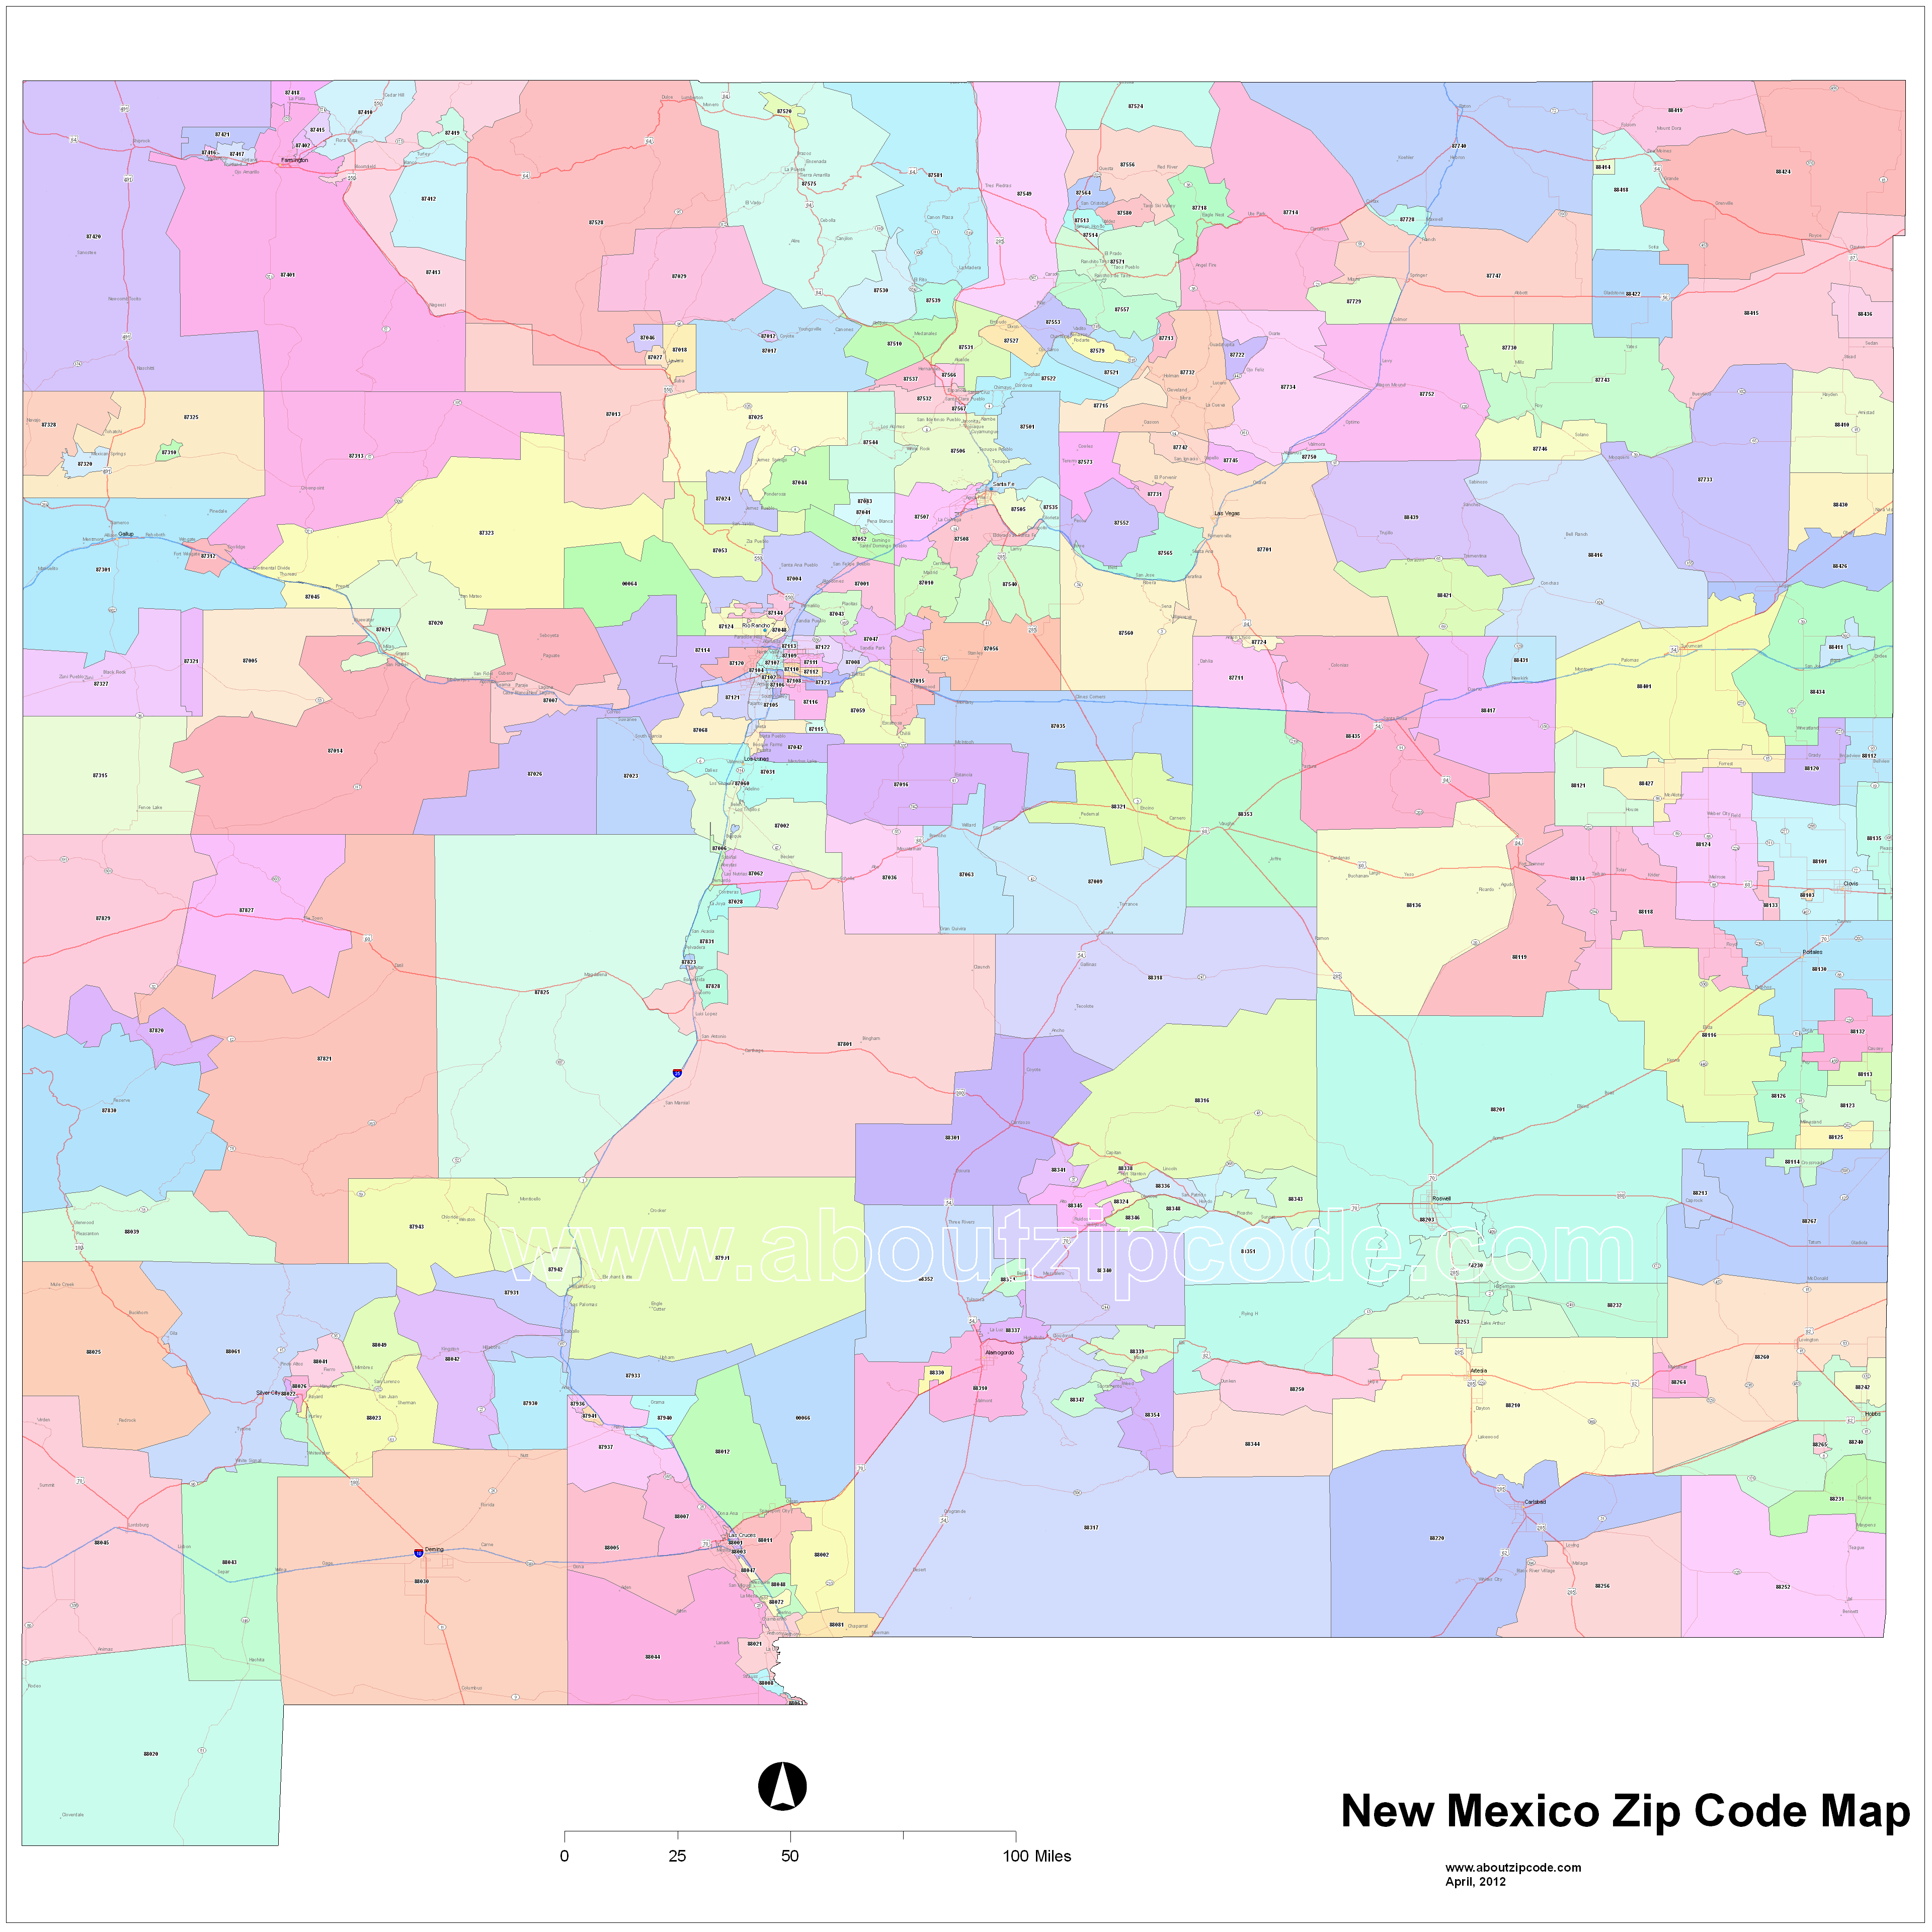 New Mexico Zip Code Maps Free New Mexico Zip Code Maps - New mexico map with cities